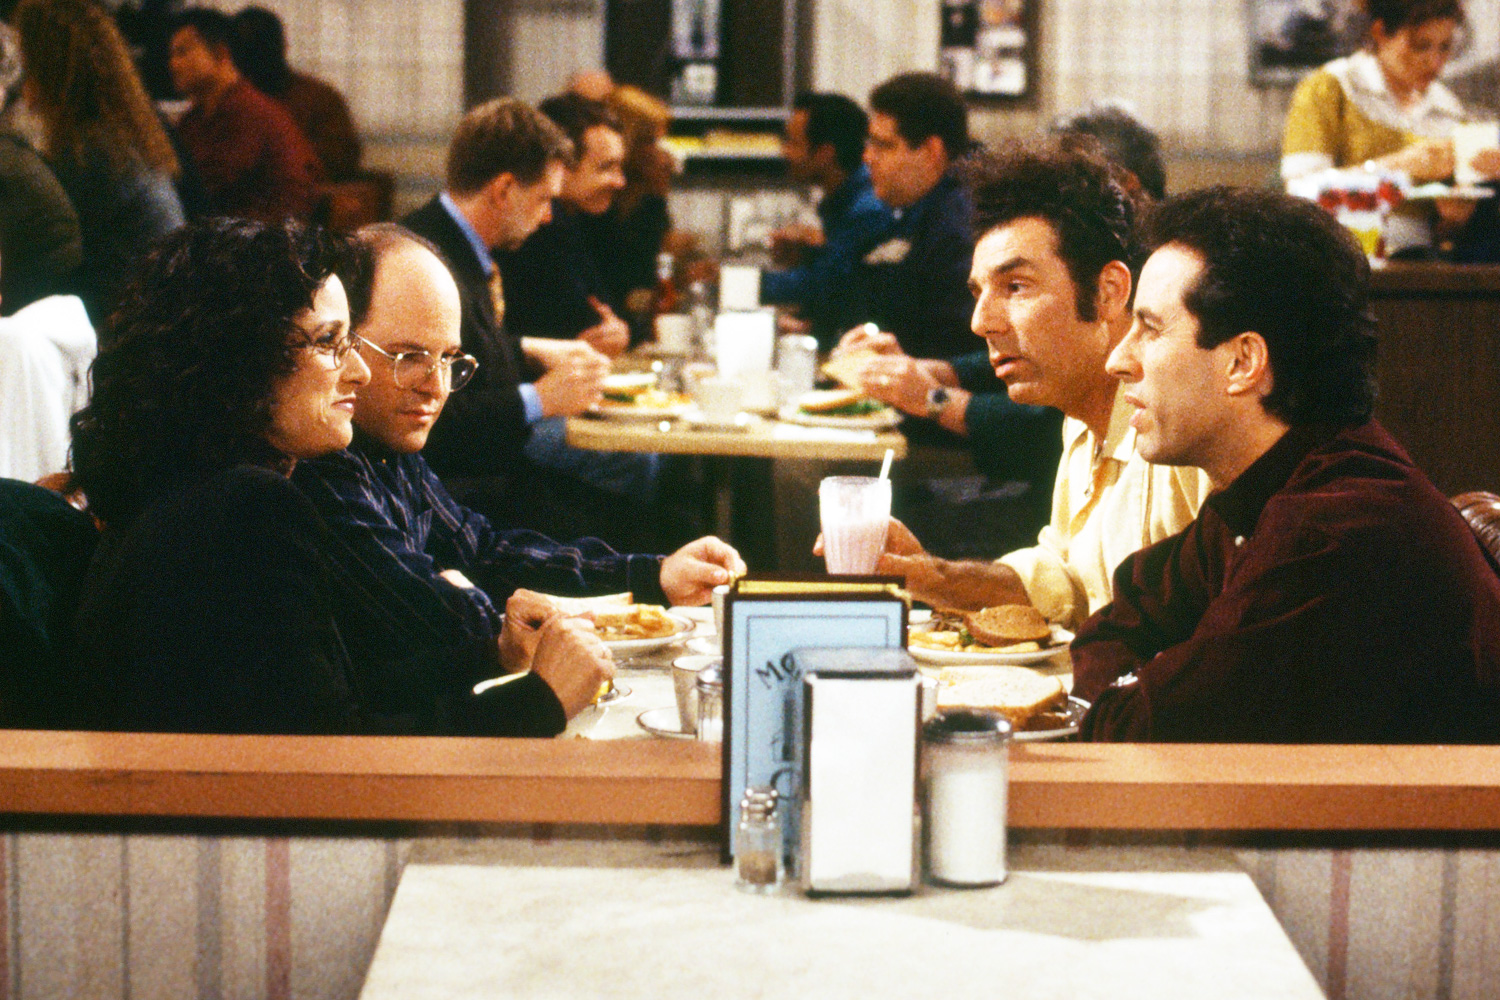 "SEINFELD -- ""The Finale: Part 1&2"" Episode 23 & 24 -- Pictured: (l-r) Julia Louis-Dreyfus as Elaine Benes, Jason Alexander as George Costanza, Michael Richards as Cosmo Kramer, Jerry Seinfeld as himself"